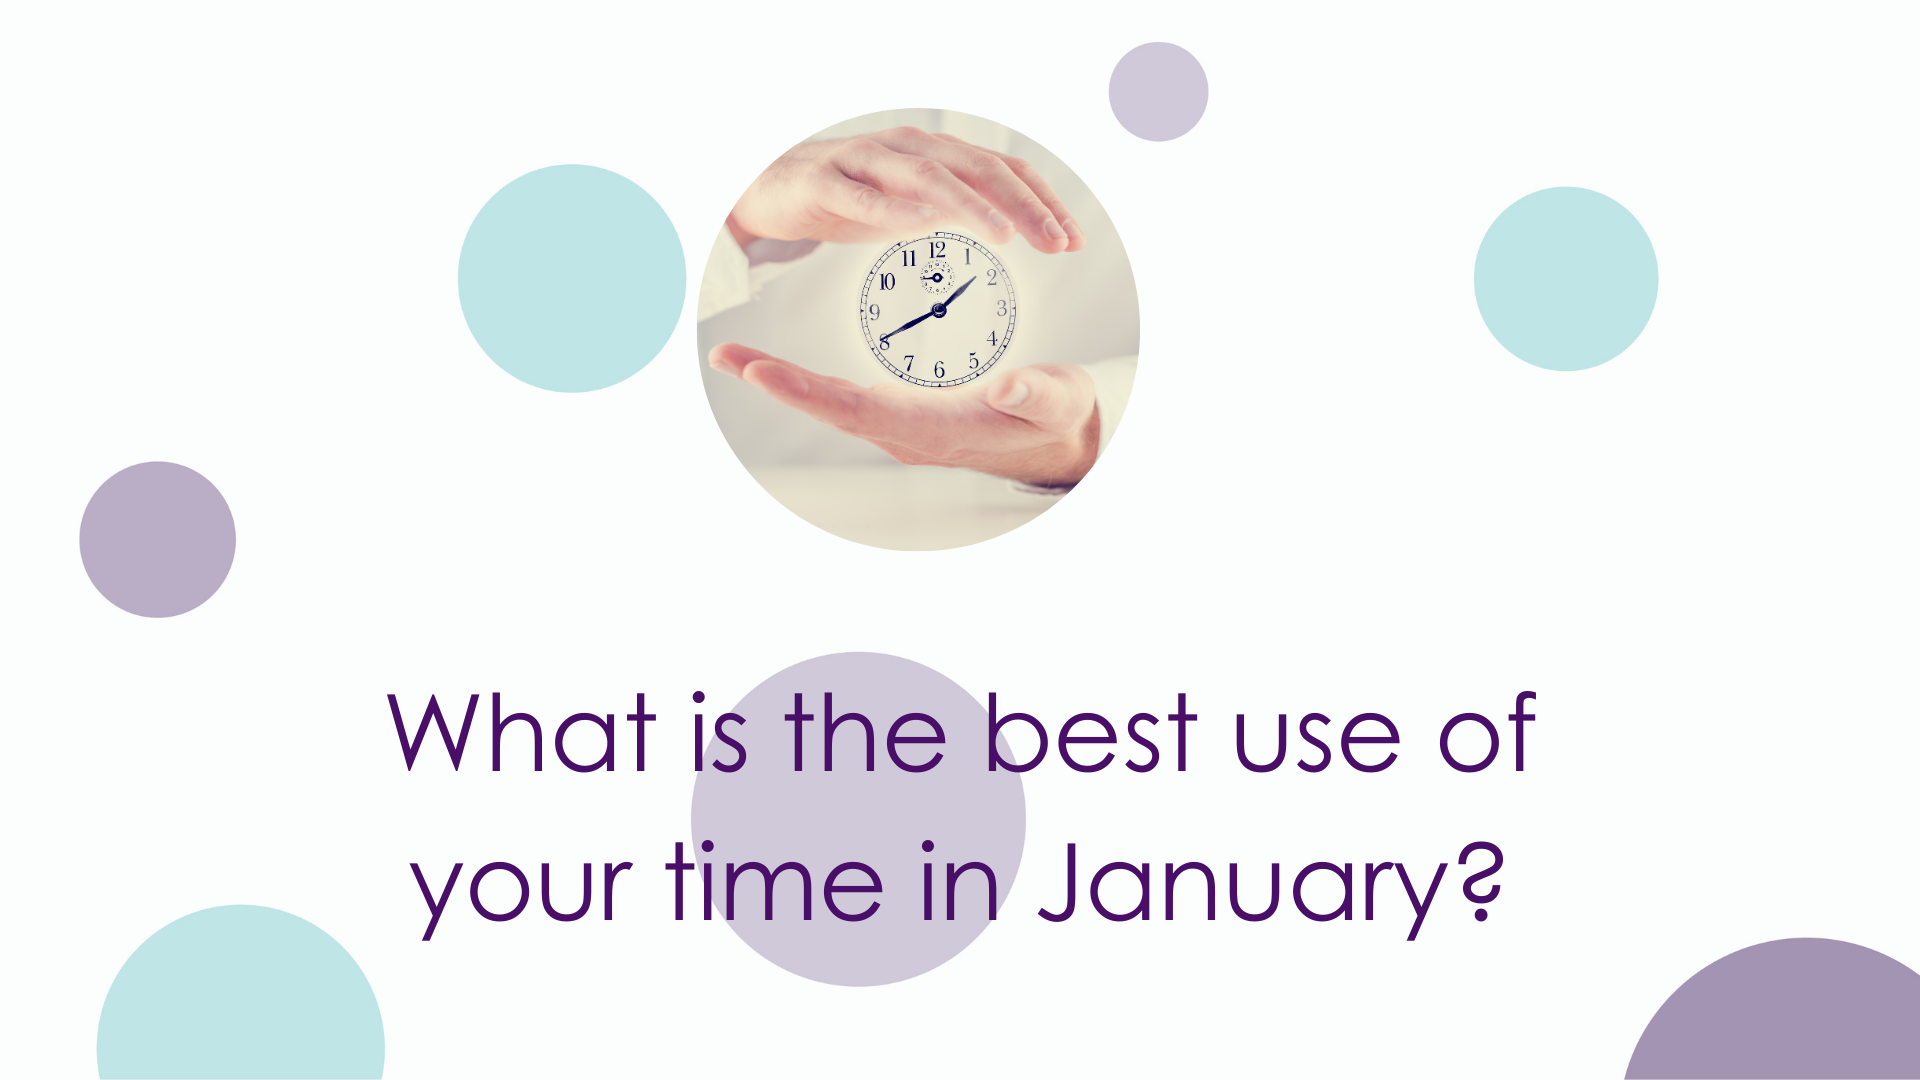 What is the best use of your time in January?